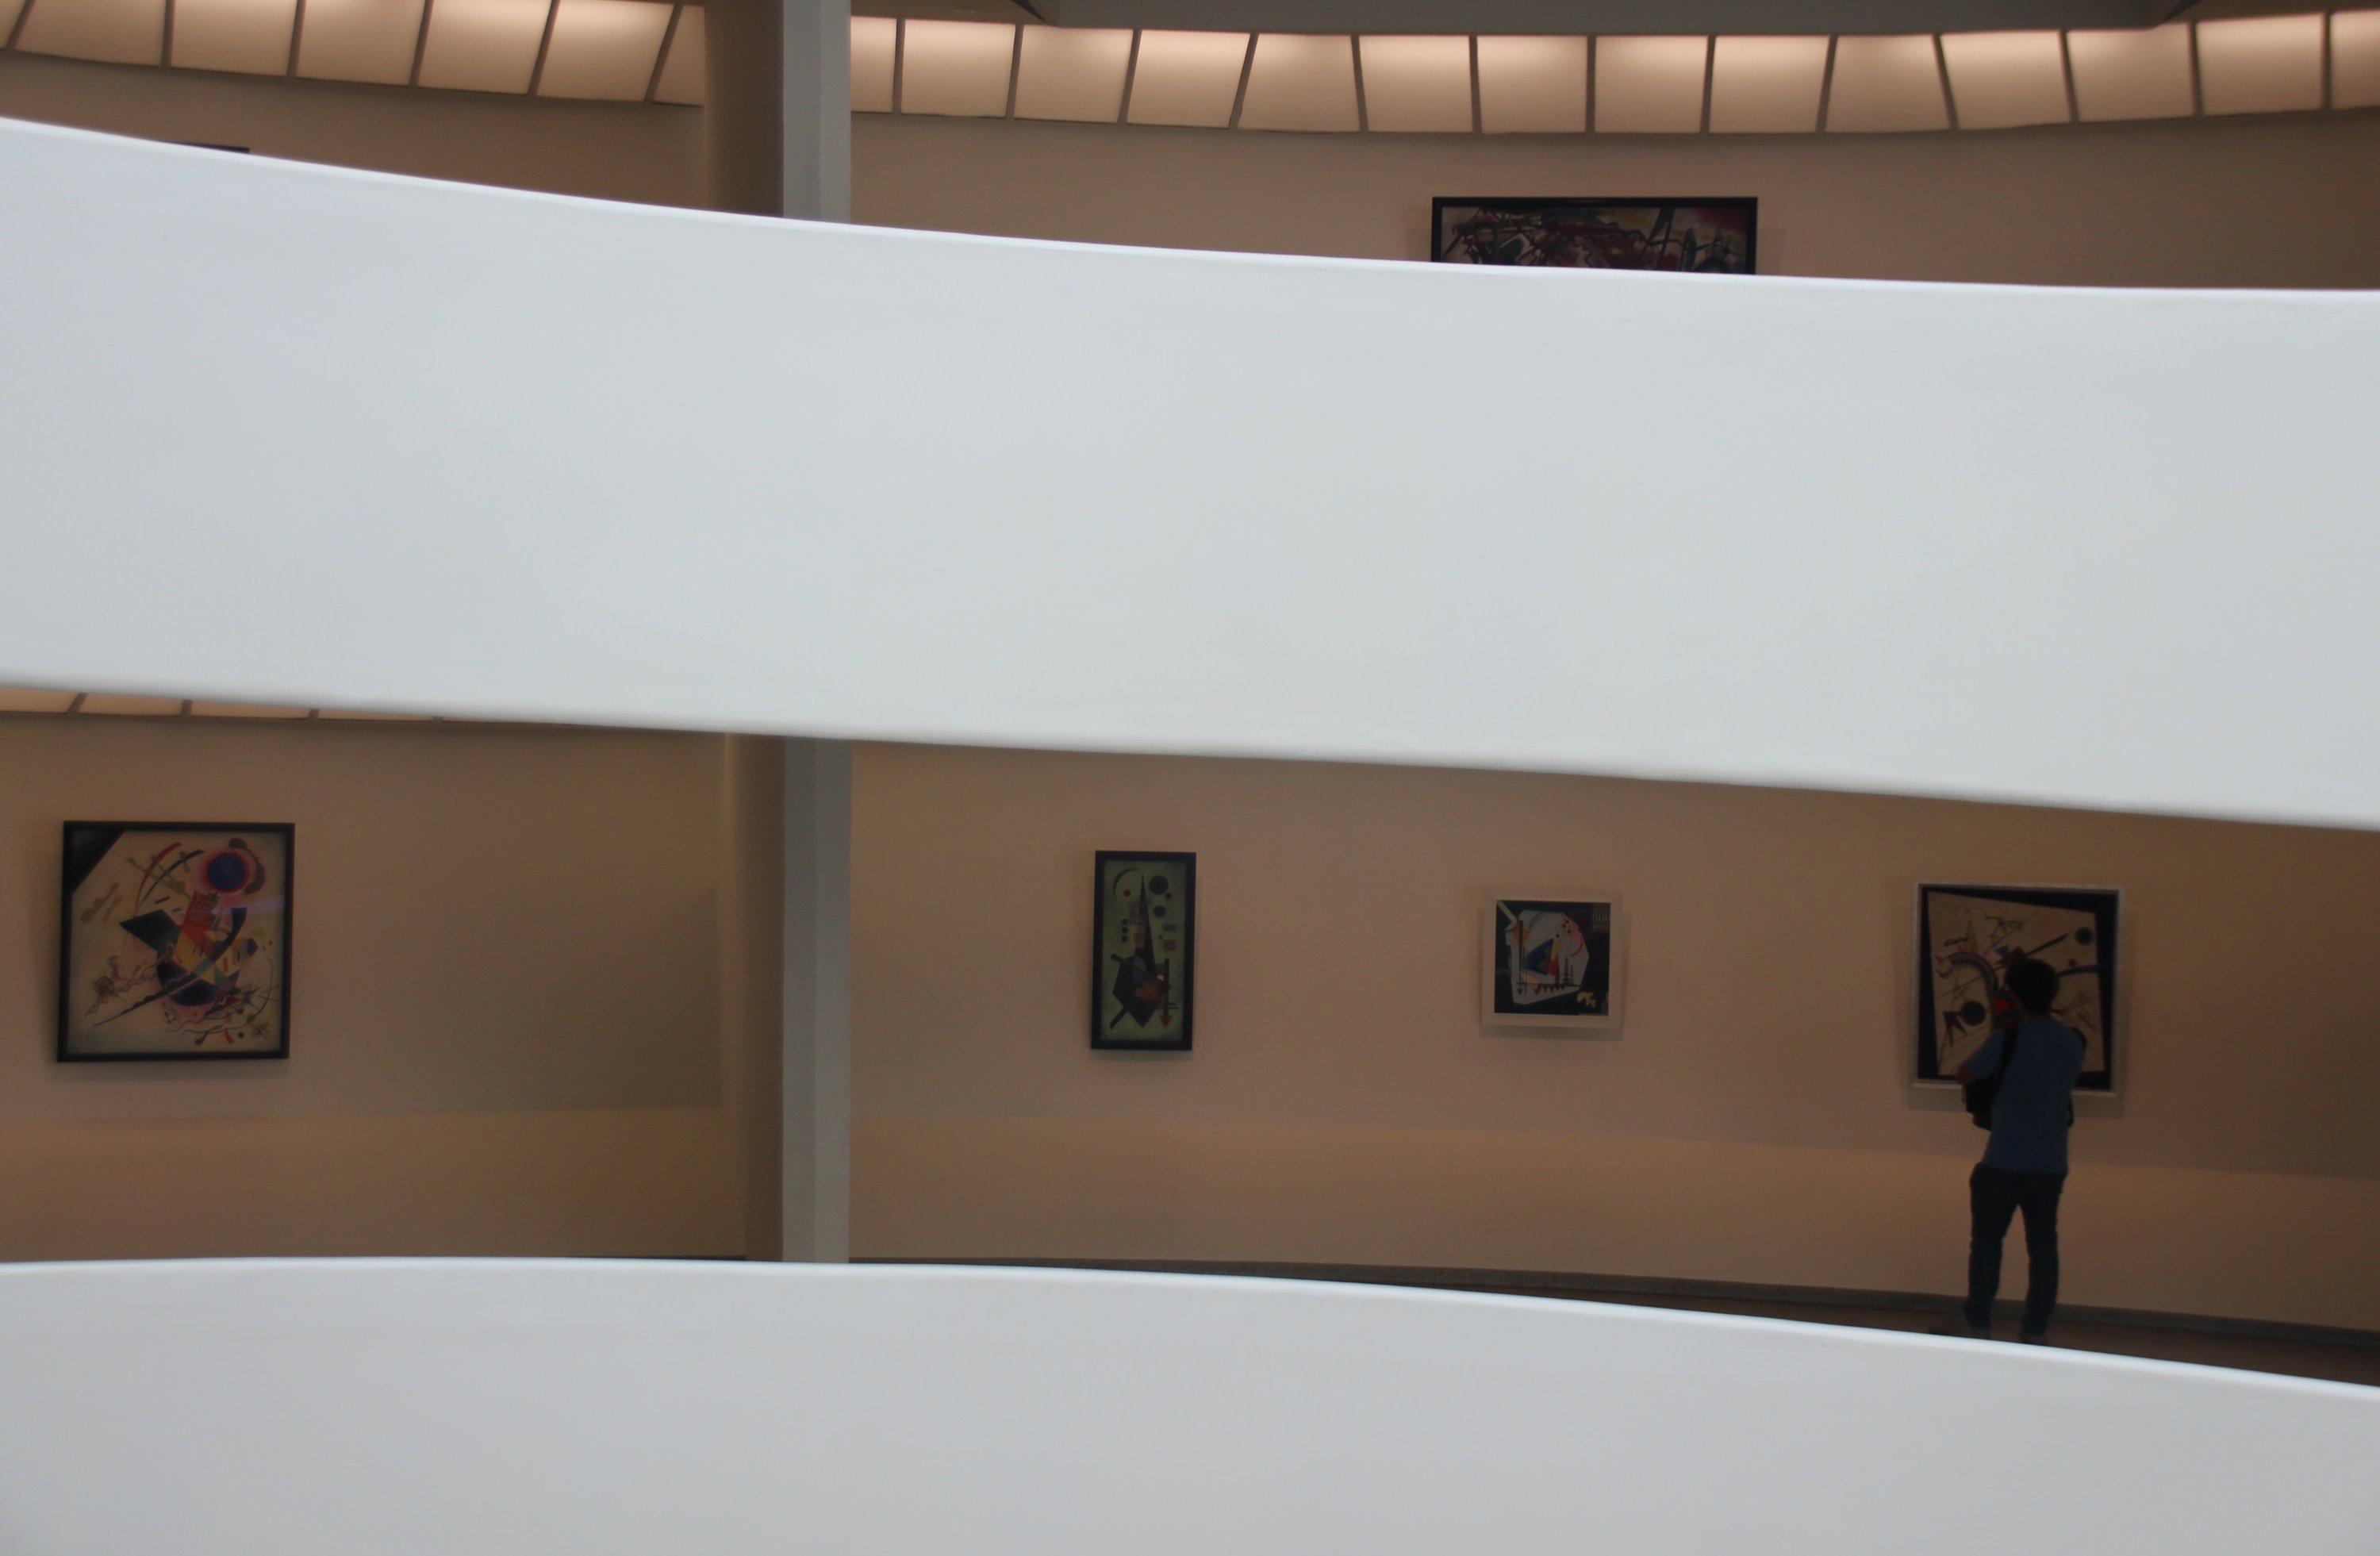 New York's Guggenheim museum has filled the walls of its famous upward spiral with more than 80 works by the Russian artist Wassily Kandinsky. (DPA Photo)